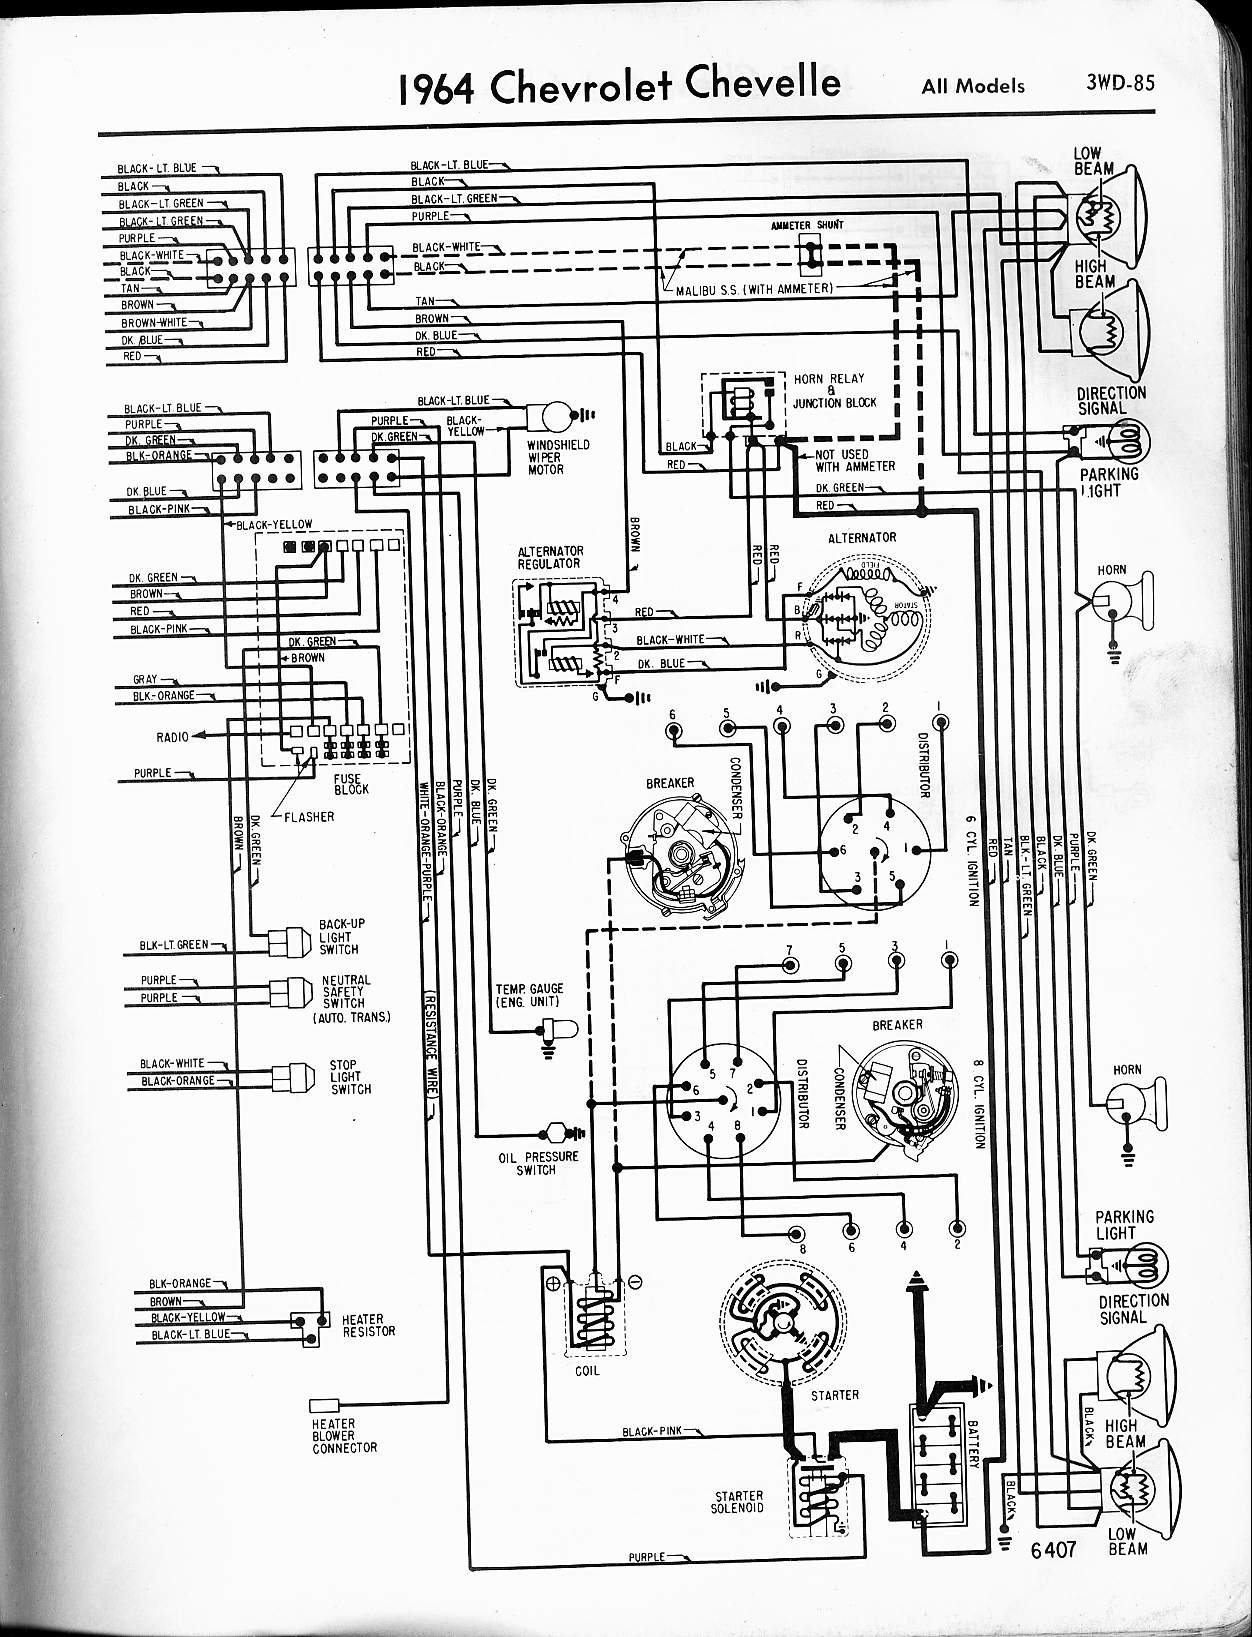 MWireChev64_3WD 085 chevy diagrams 1964 chevy truck wiring diagram at suagrazia.org